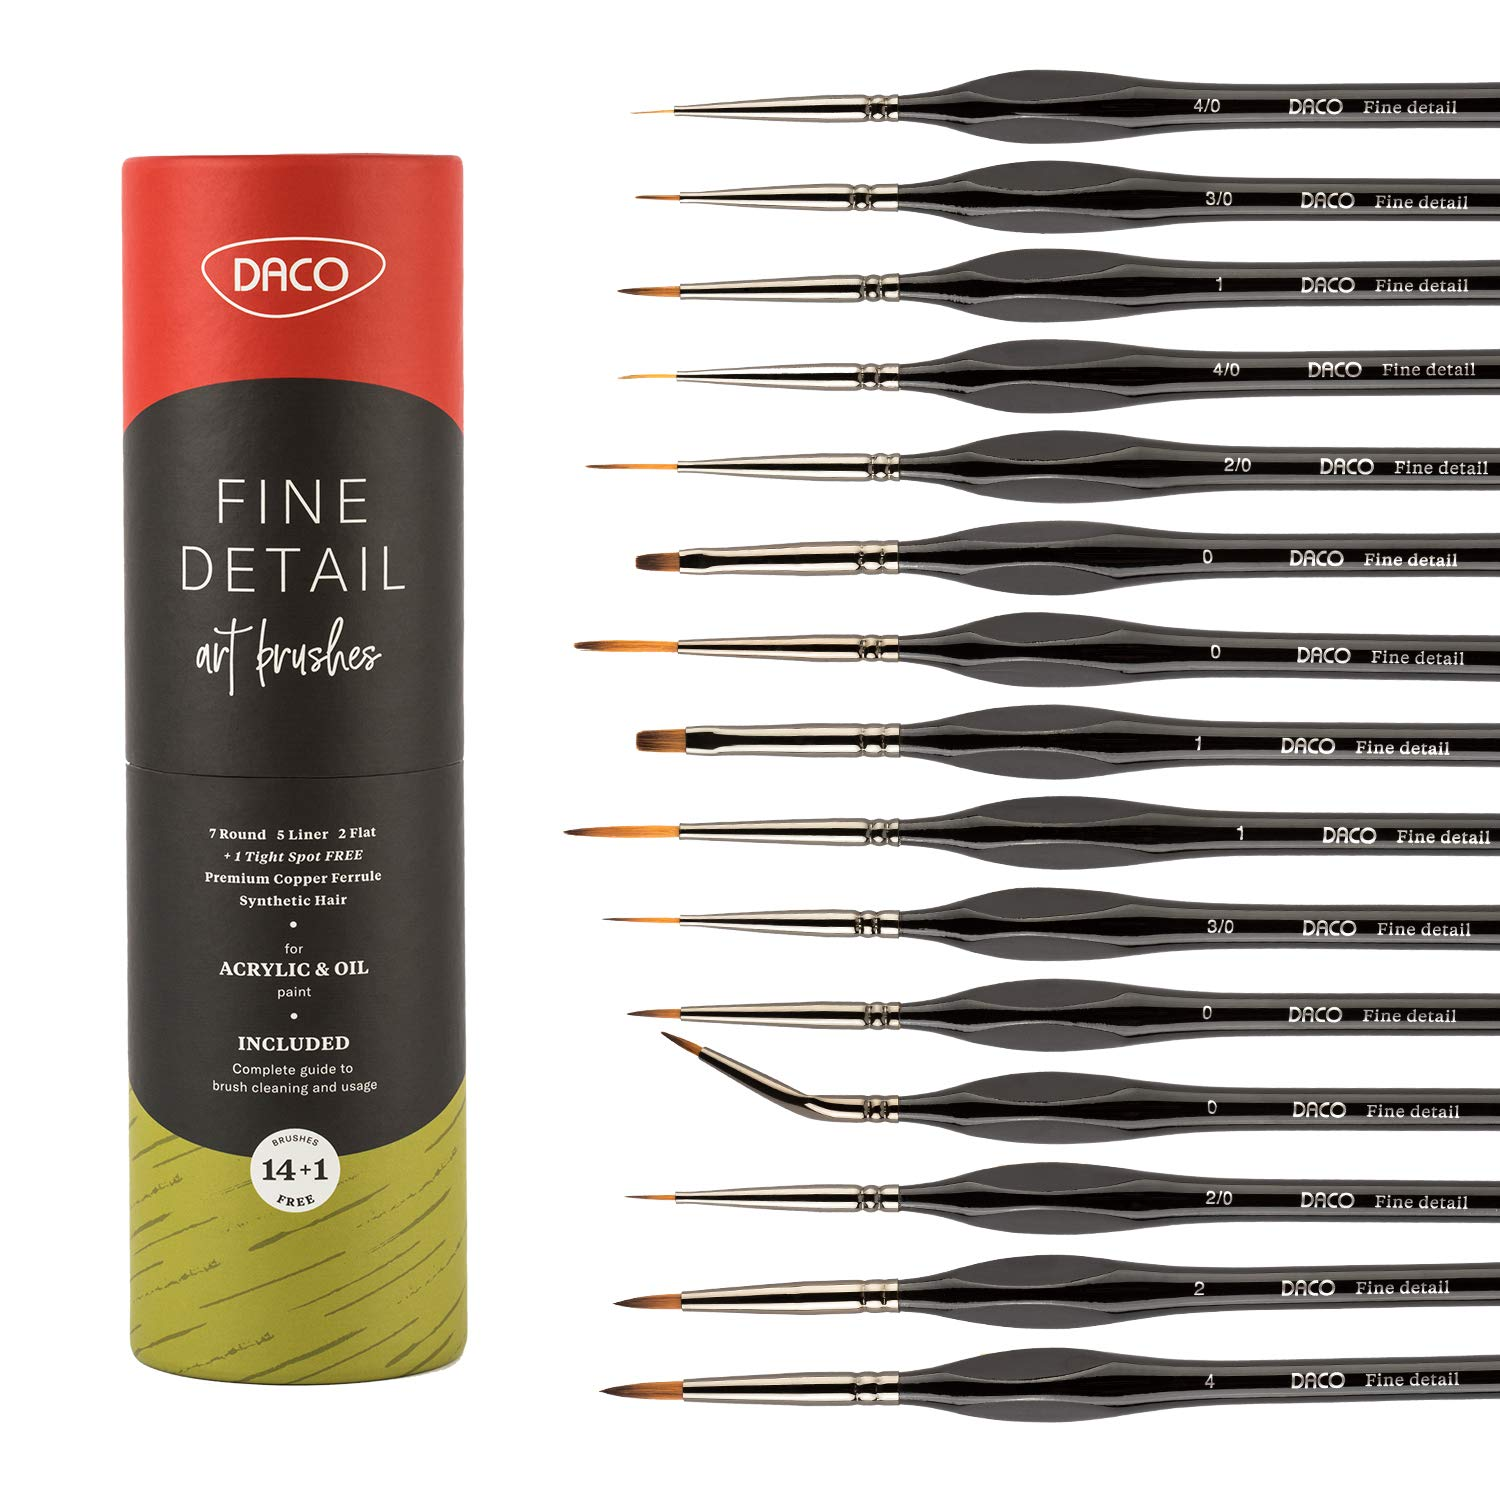 Daco Detail Paint Brush Set, 14pcs +1 Miniature Paint Brushes with Ergonomic Handle and Travel Bag, Painting Supplies for Acrylic, Oil, Watercolor, Paint by Numbers for Adults by DACO